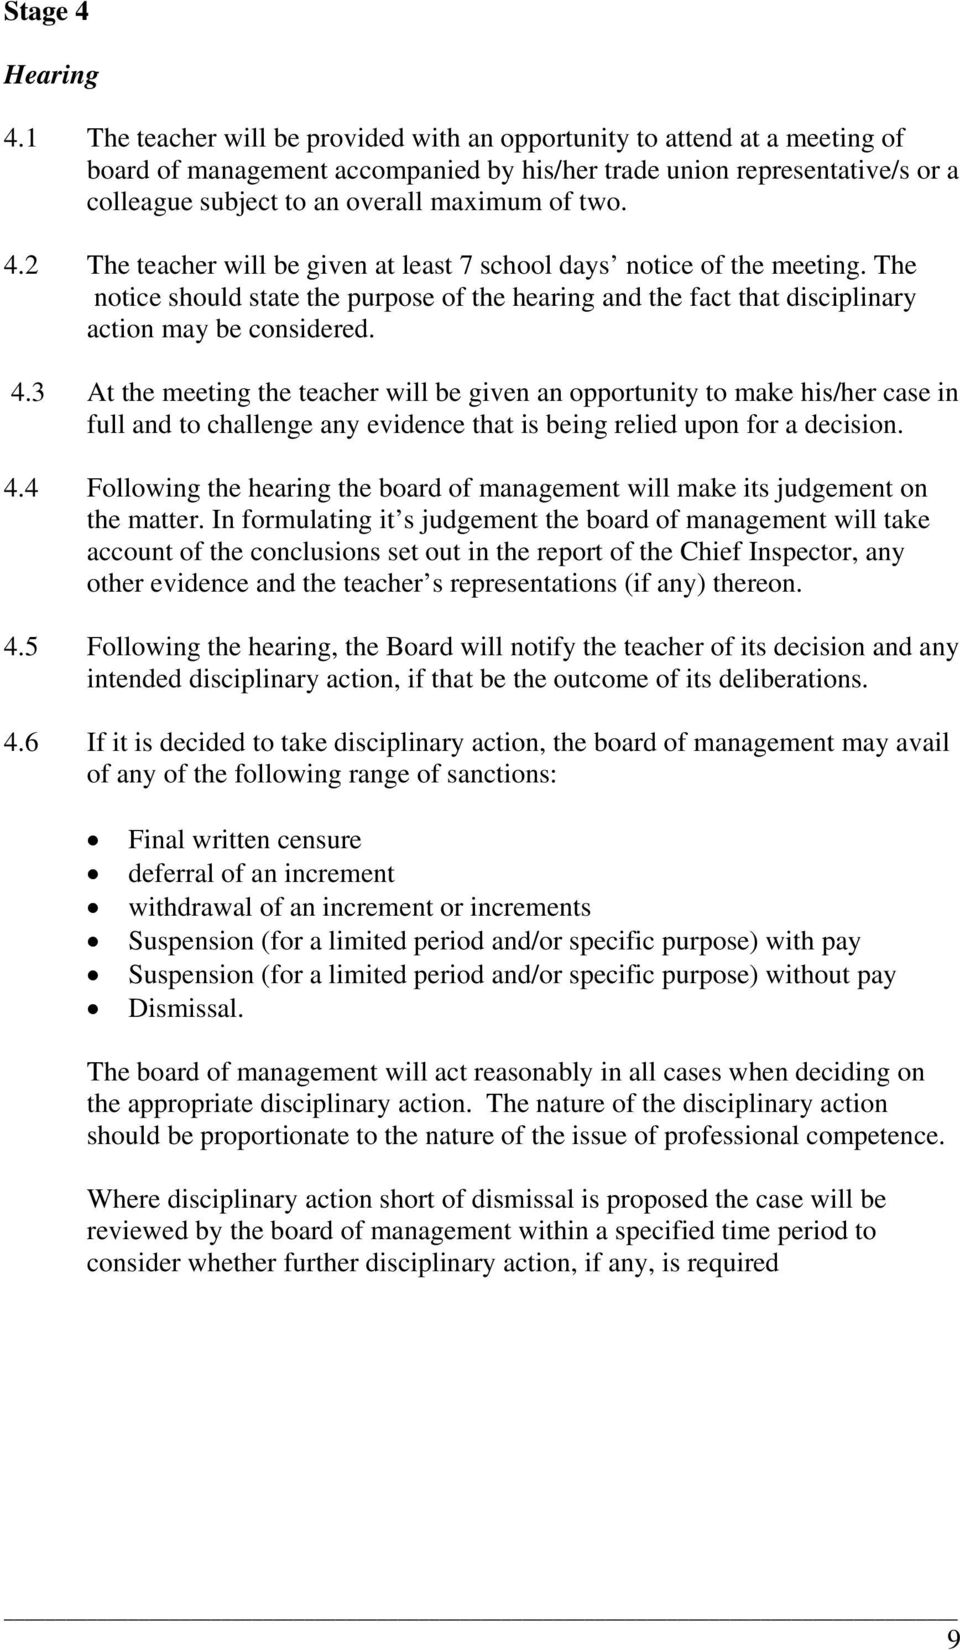 two. 4.2 The teacher will be given at least 7 school days notice of the meeting. The notice should state the purpose of the hearing and the fact that disciplinary action may be considered. 4.3 At the meeting the teacher will be given an opportunity to make his/her case in full and to challenge any evidence that is being relied upon for a decision.